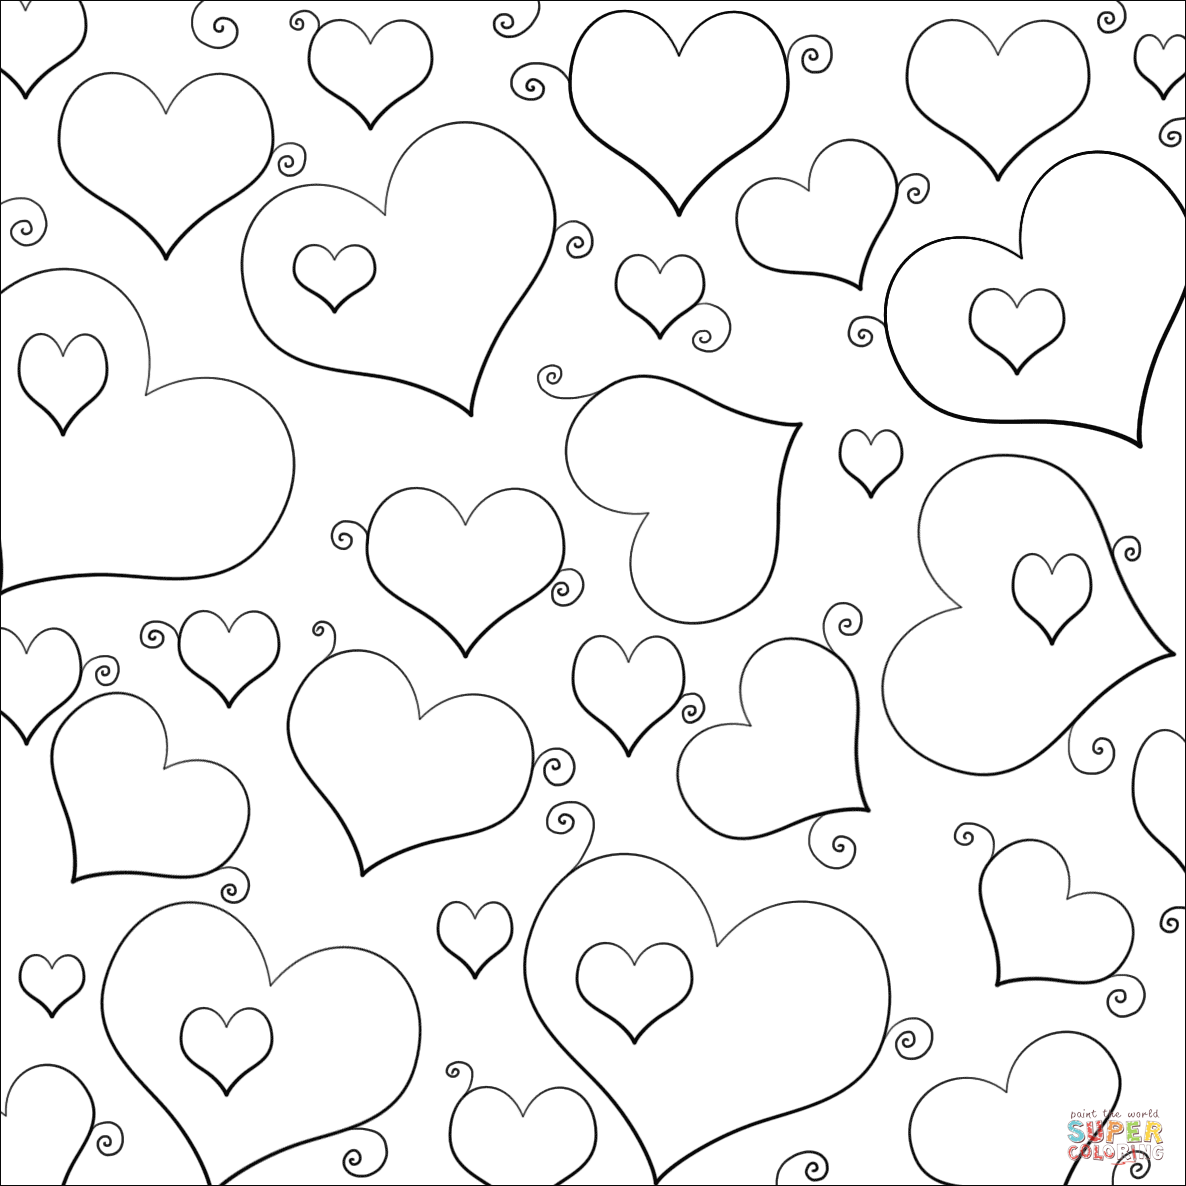 Lots of Hearts coloring page | Free Printable Coloring Pages